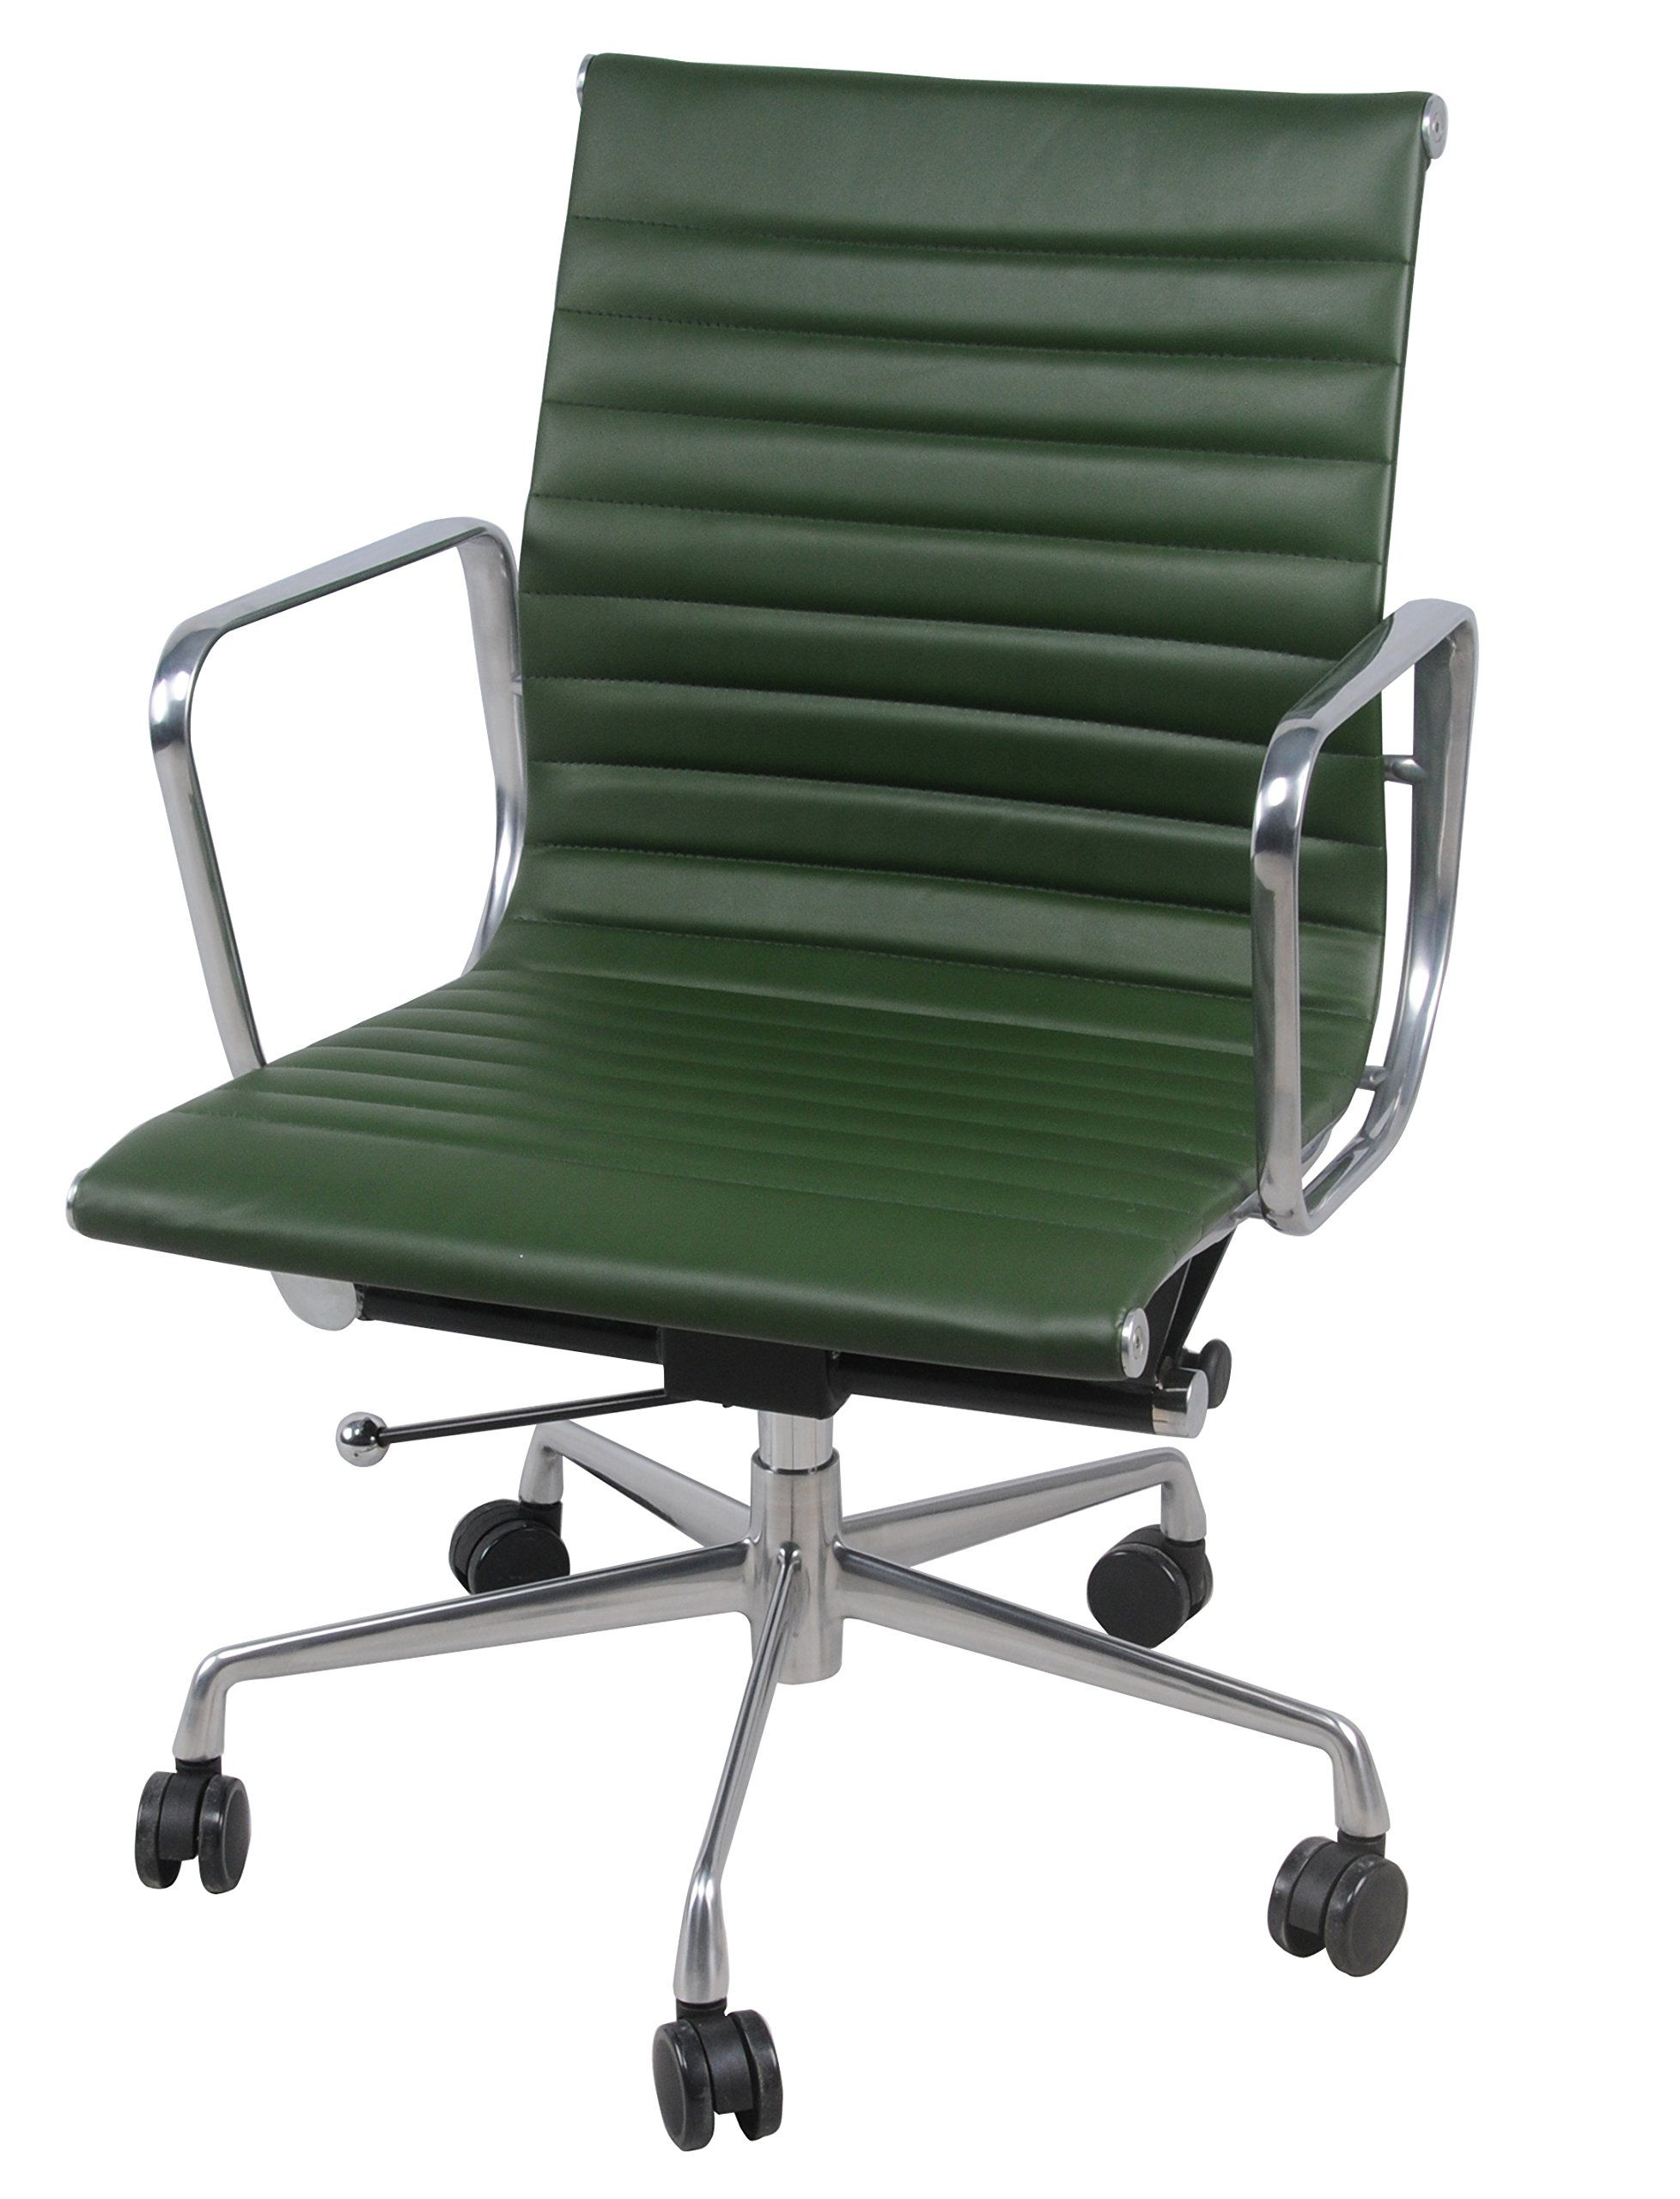 Langley Pu Leather Low Back Office Chairchrome Legsvintage Asparagus Green